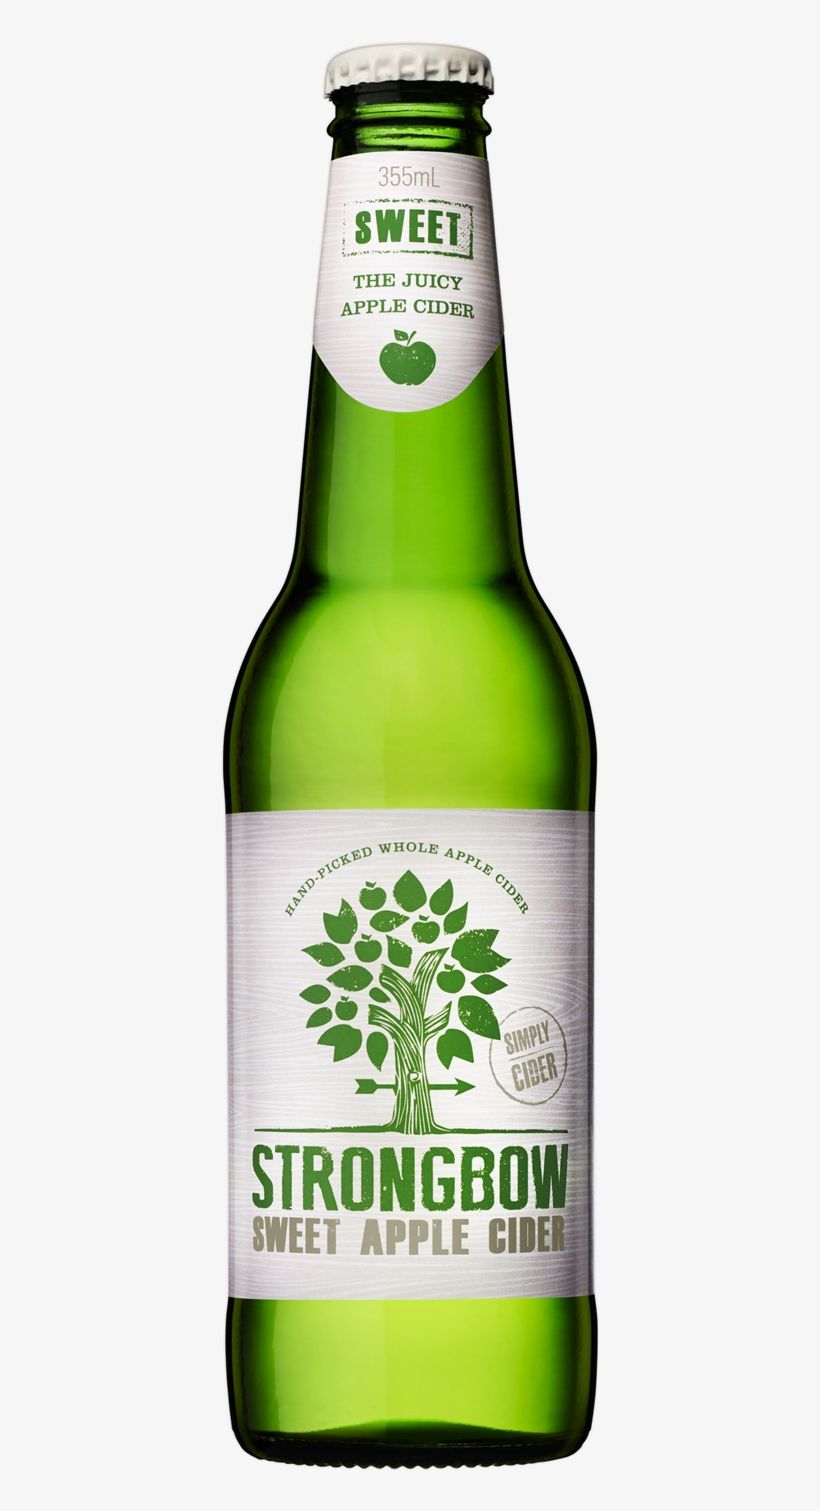 Strongbow Sweet Apple Cider.